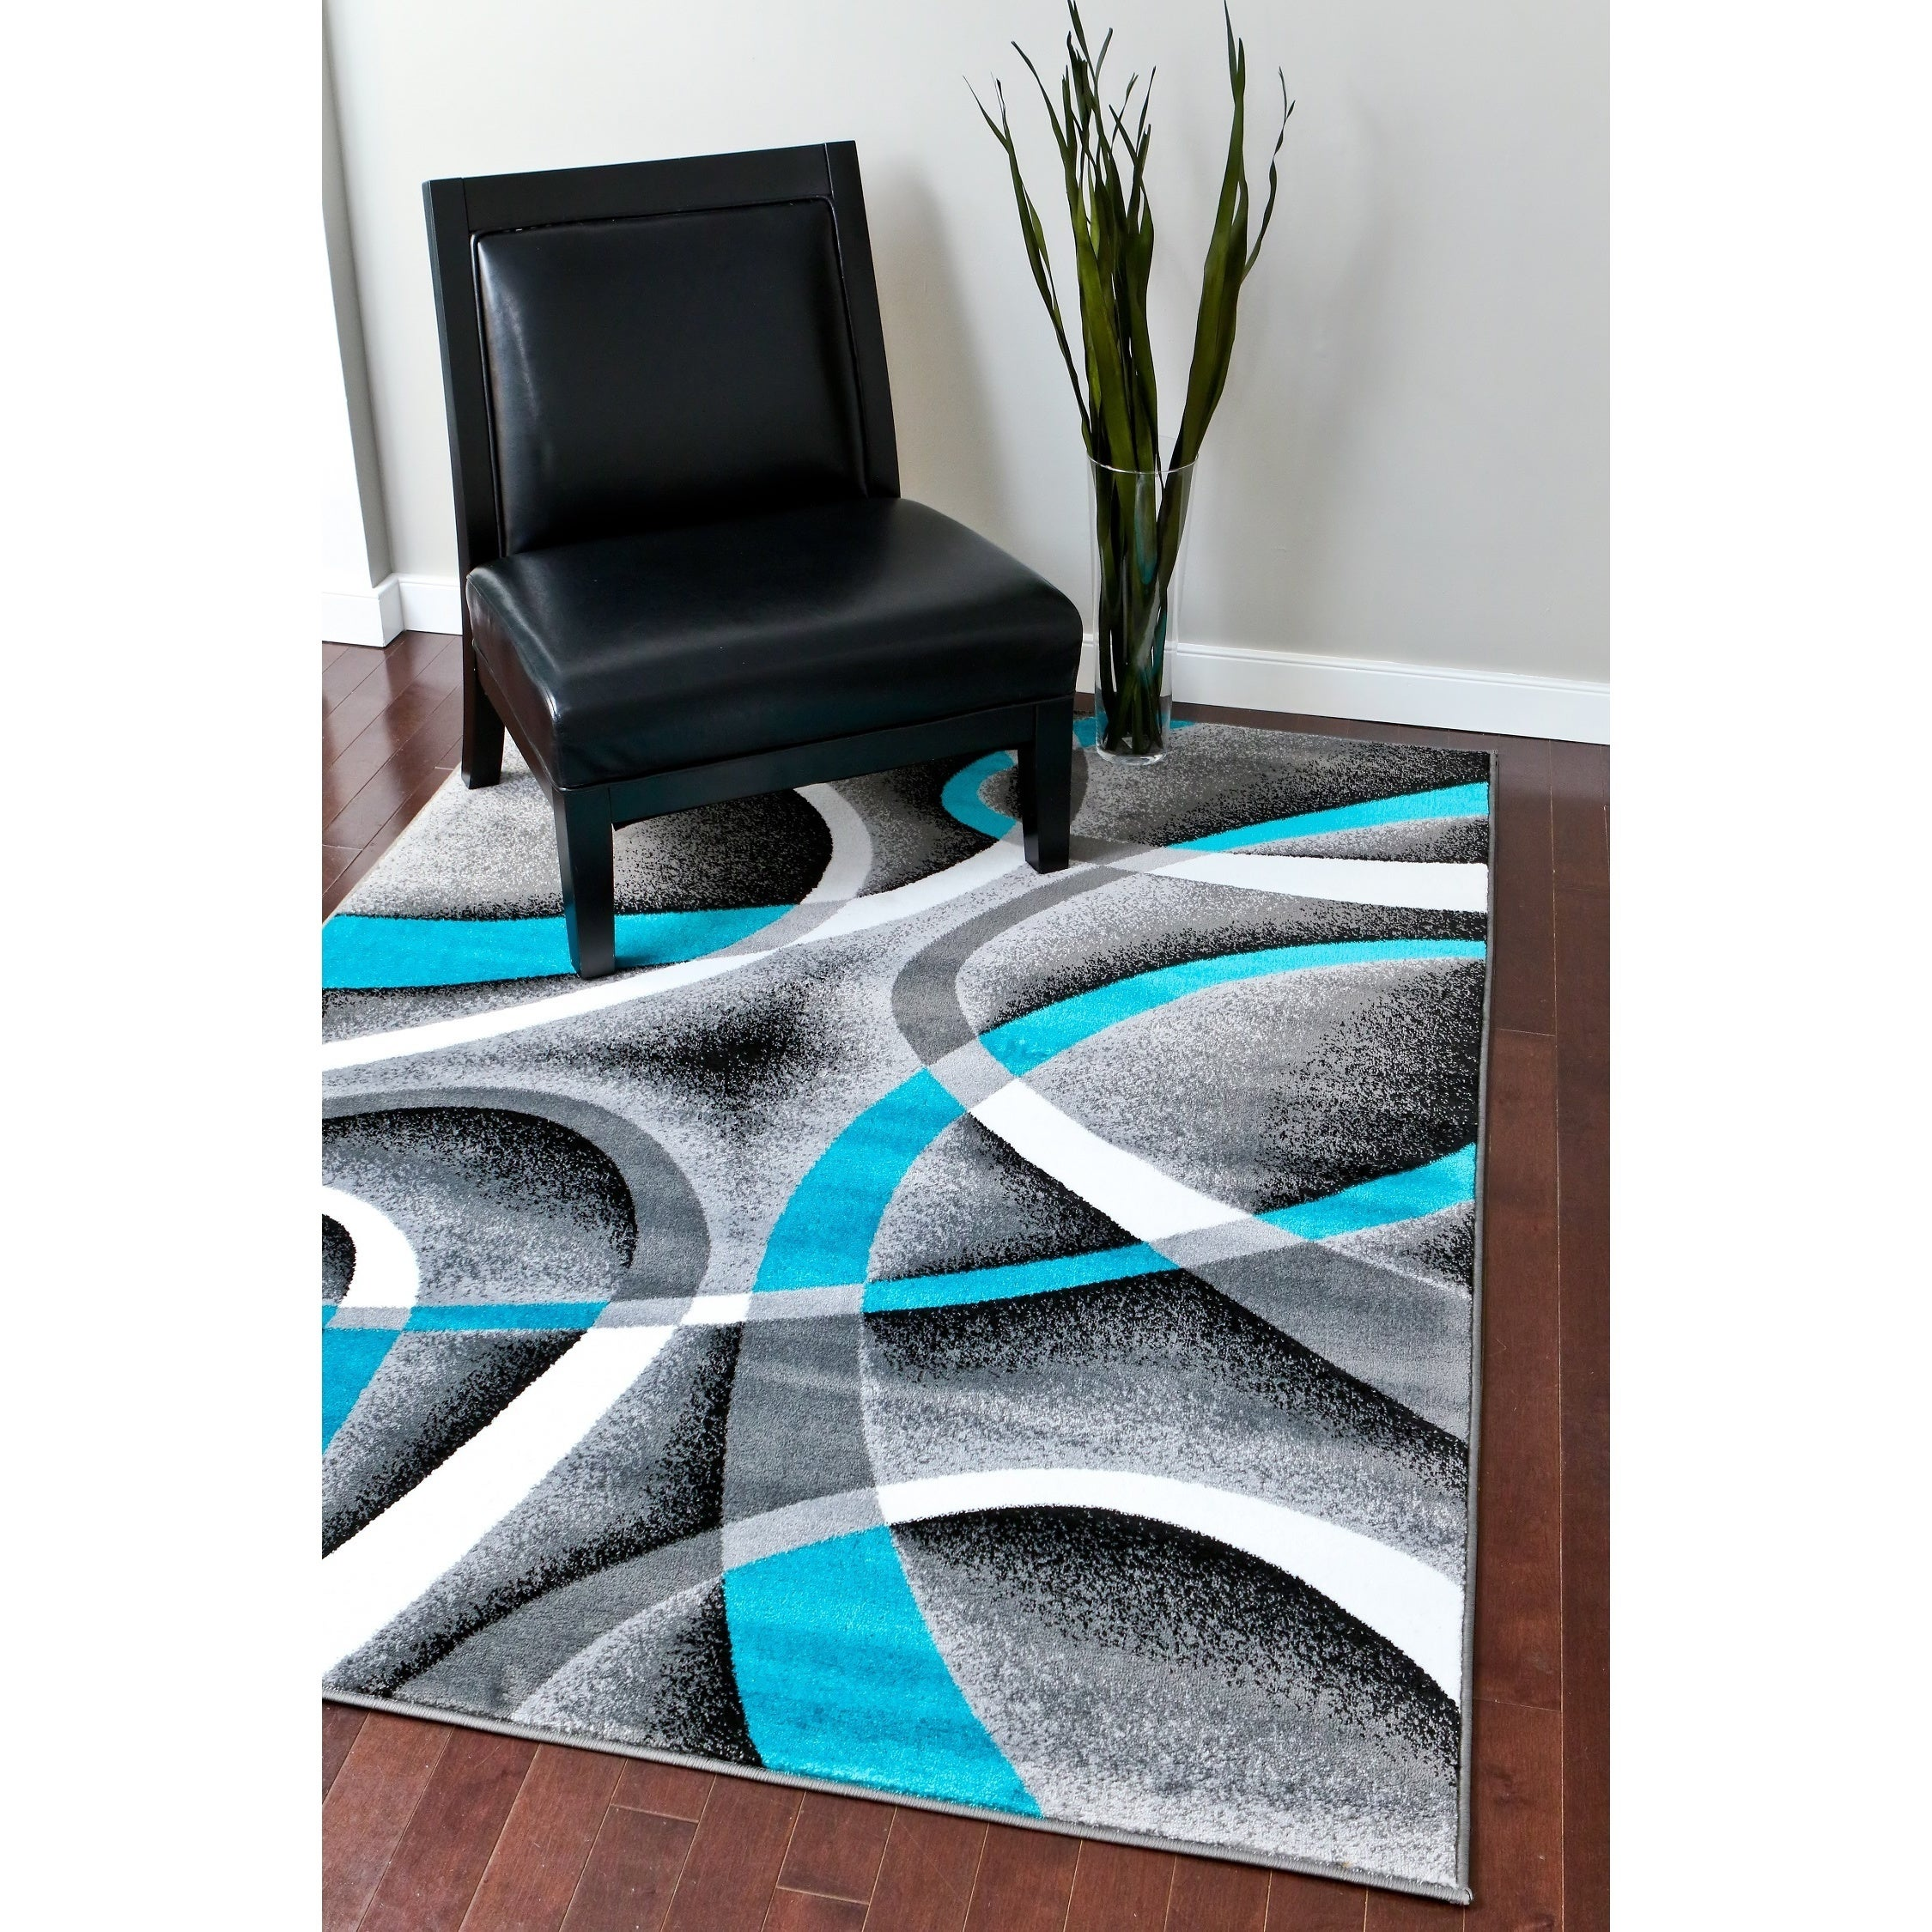 Turquoise Kitchen Rugs New Rug In The: Persian Rugs Modern Trendz Collection Turquoise/ Grey Rug